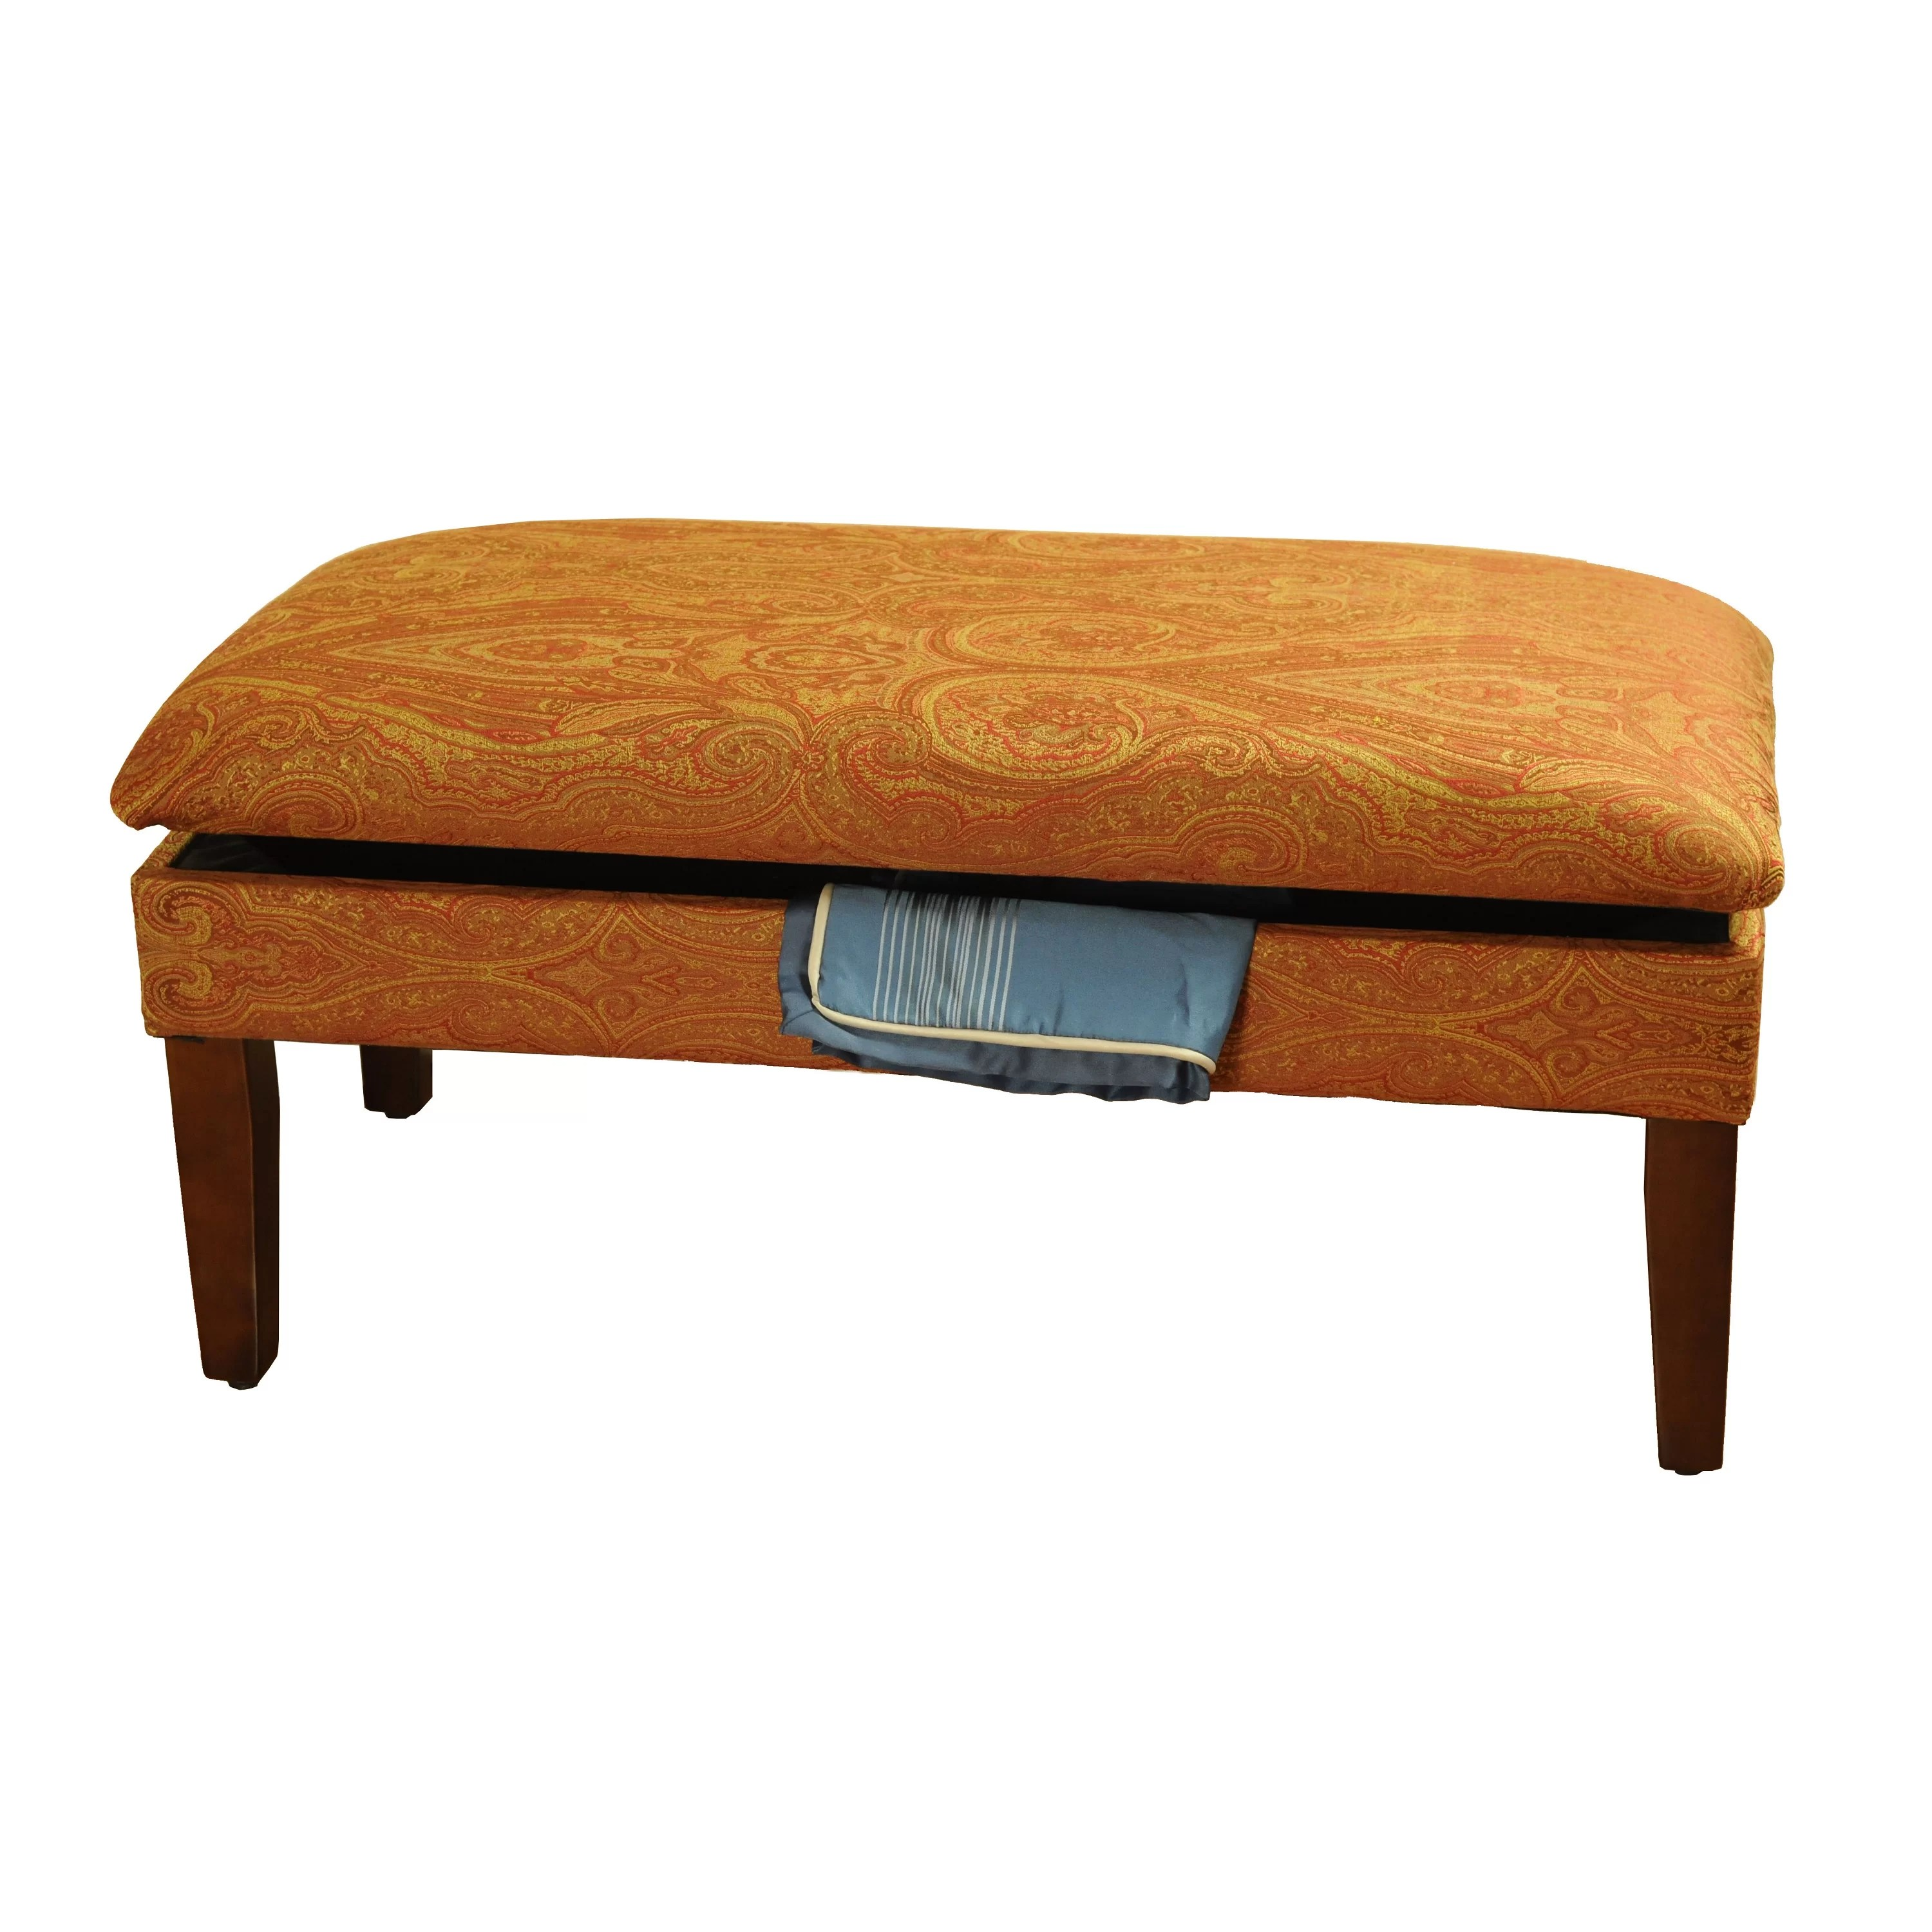 Bedroom Stools And Benches Homepop Upholstered Storage Bedroom Bench And Reviews Wayfair